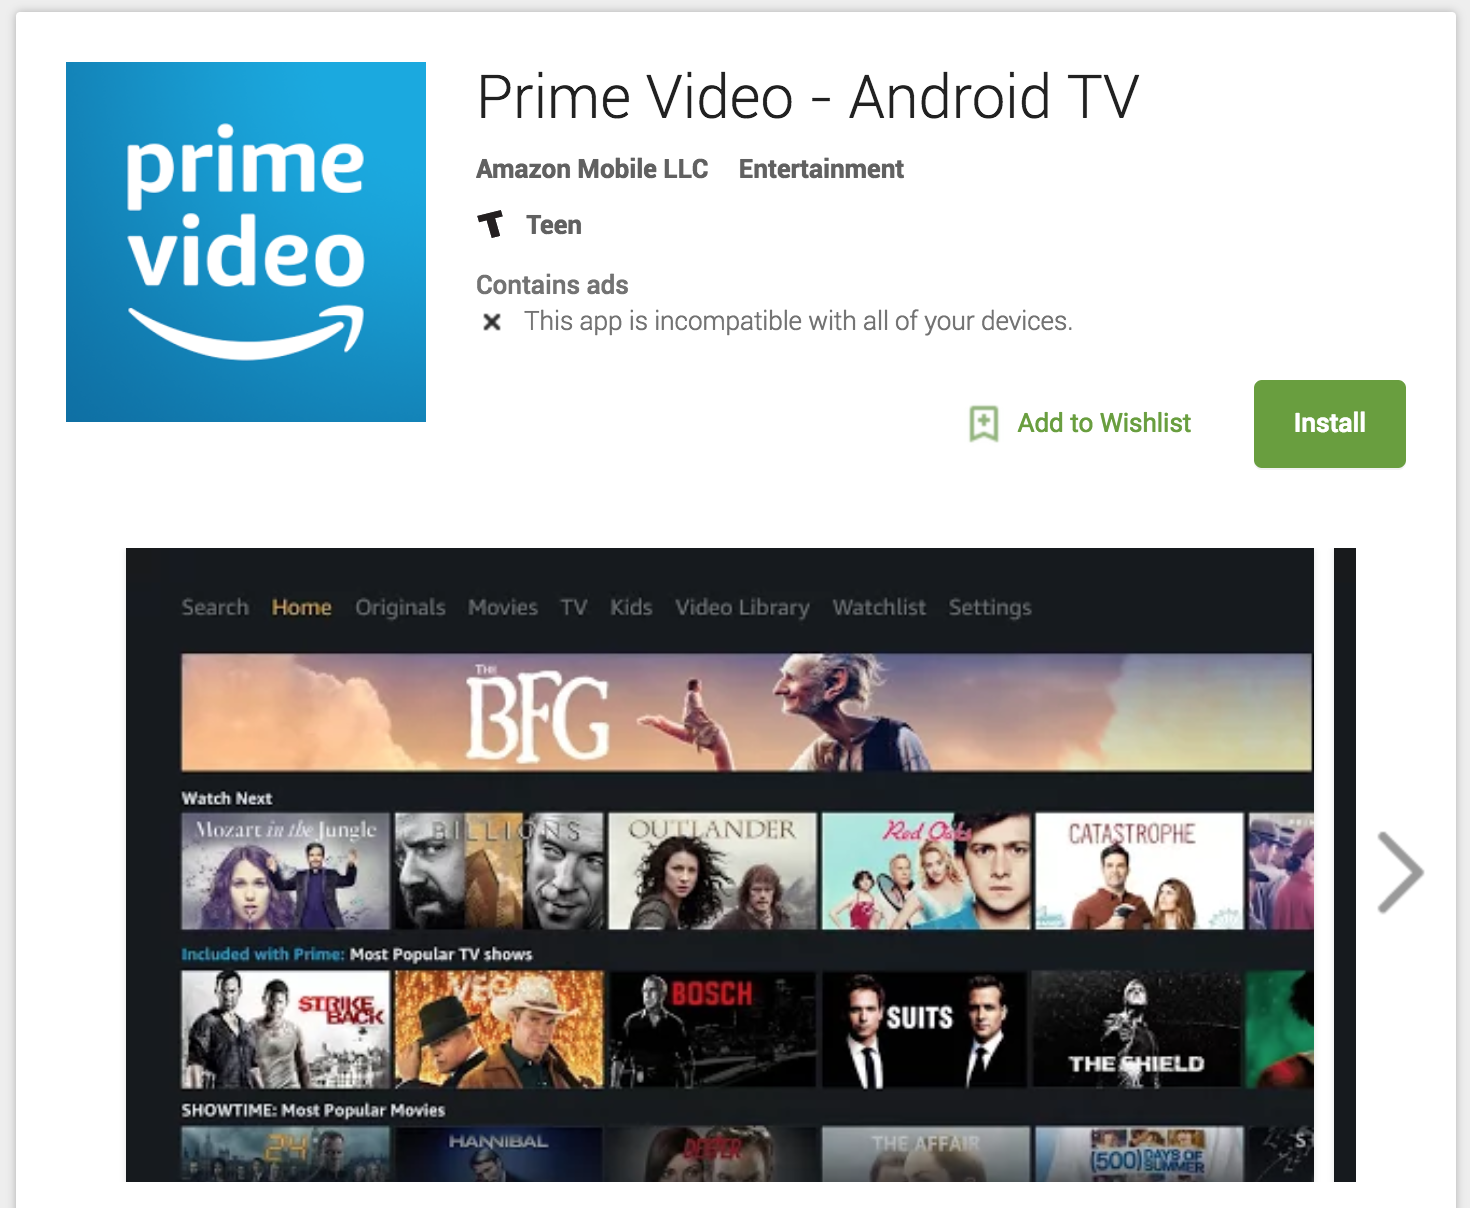 Amazon Prime Video comes to Android TV but you can't